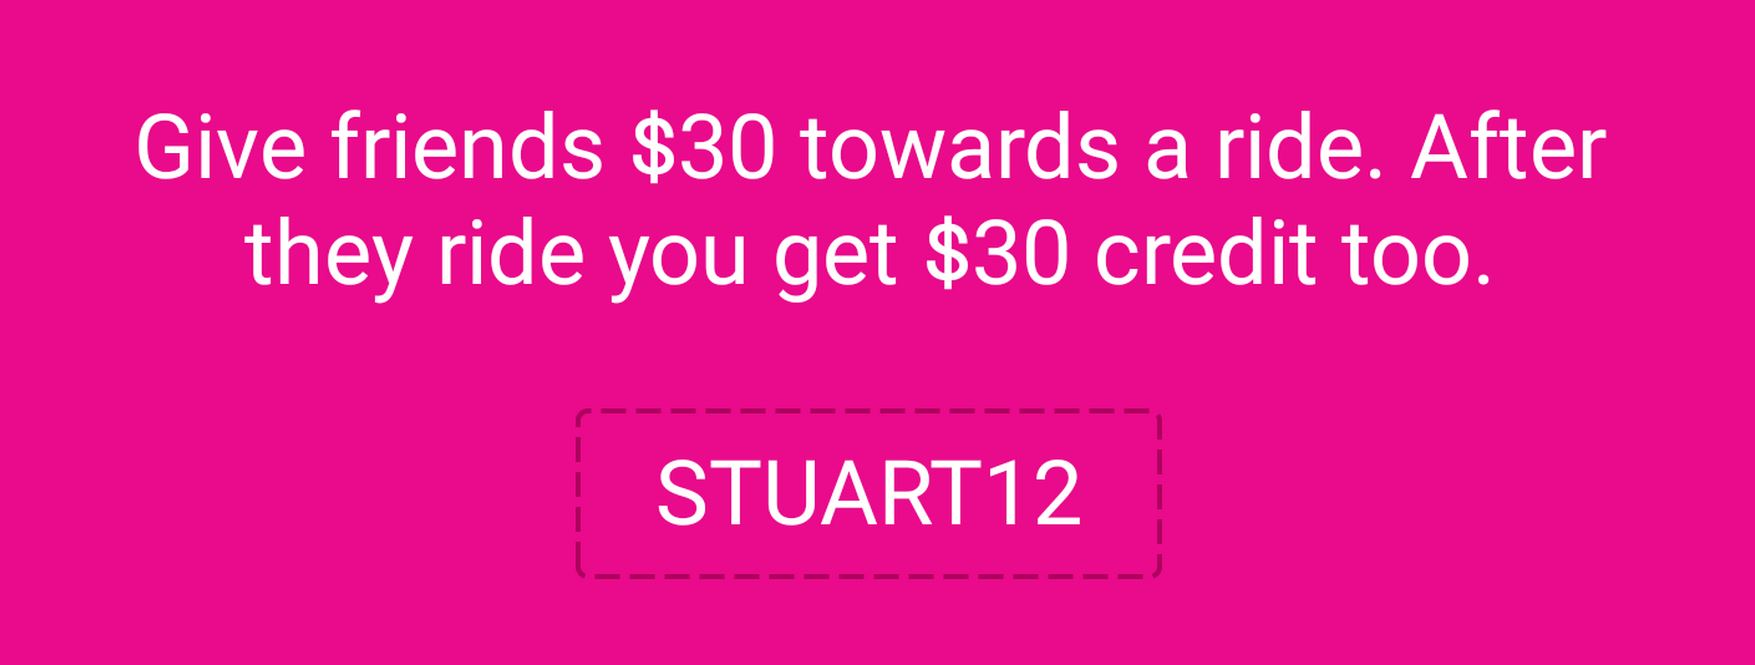 Lyft credit for free rides STUART12